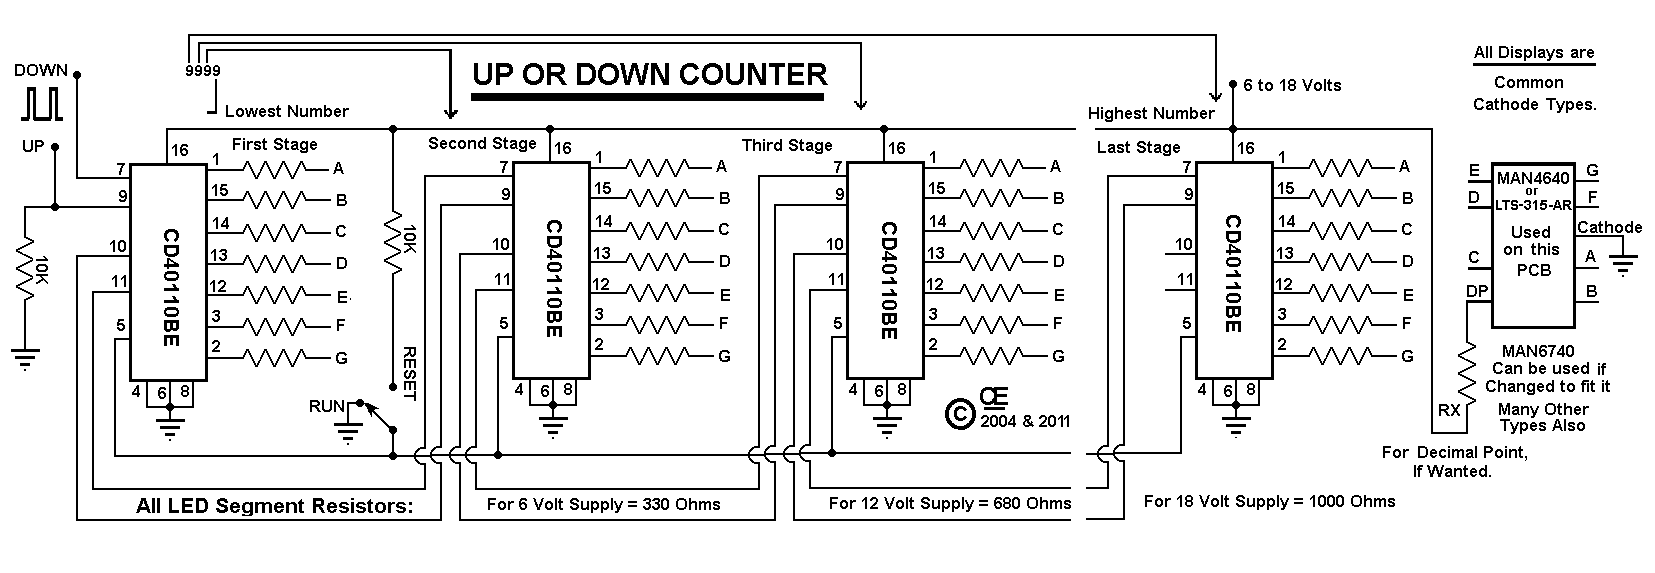 Digital Down Counter Circuit : A digital up down counter